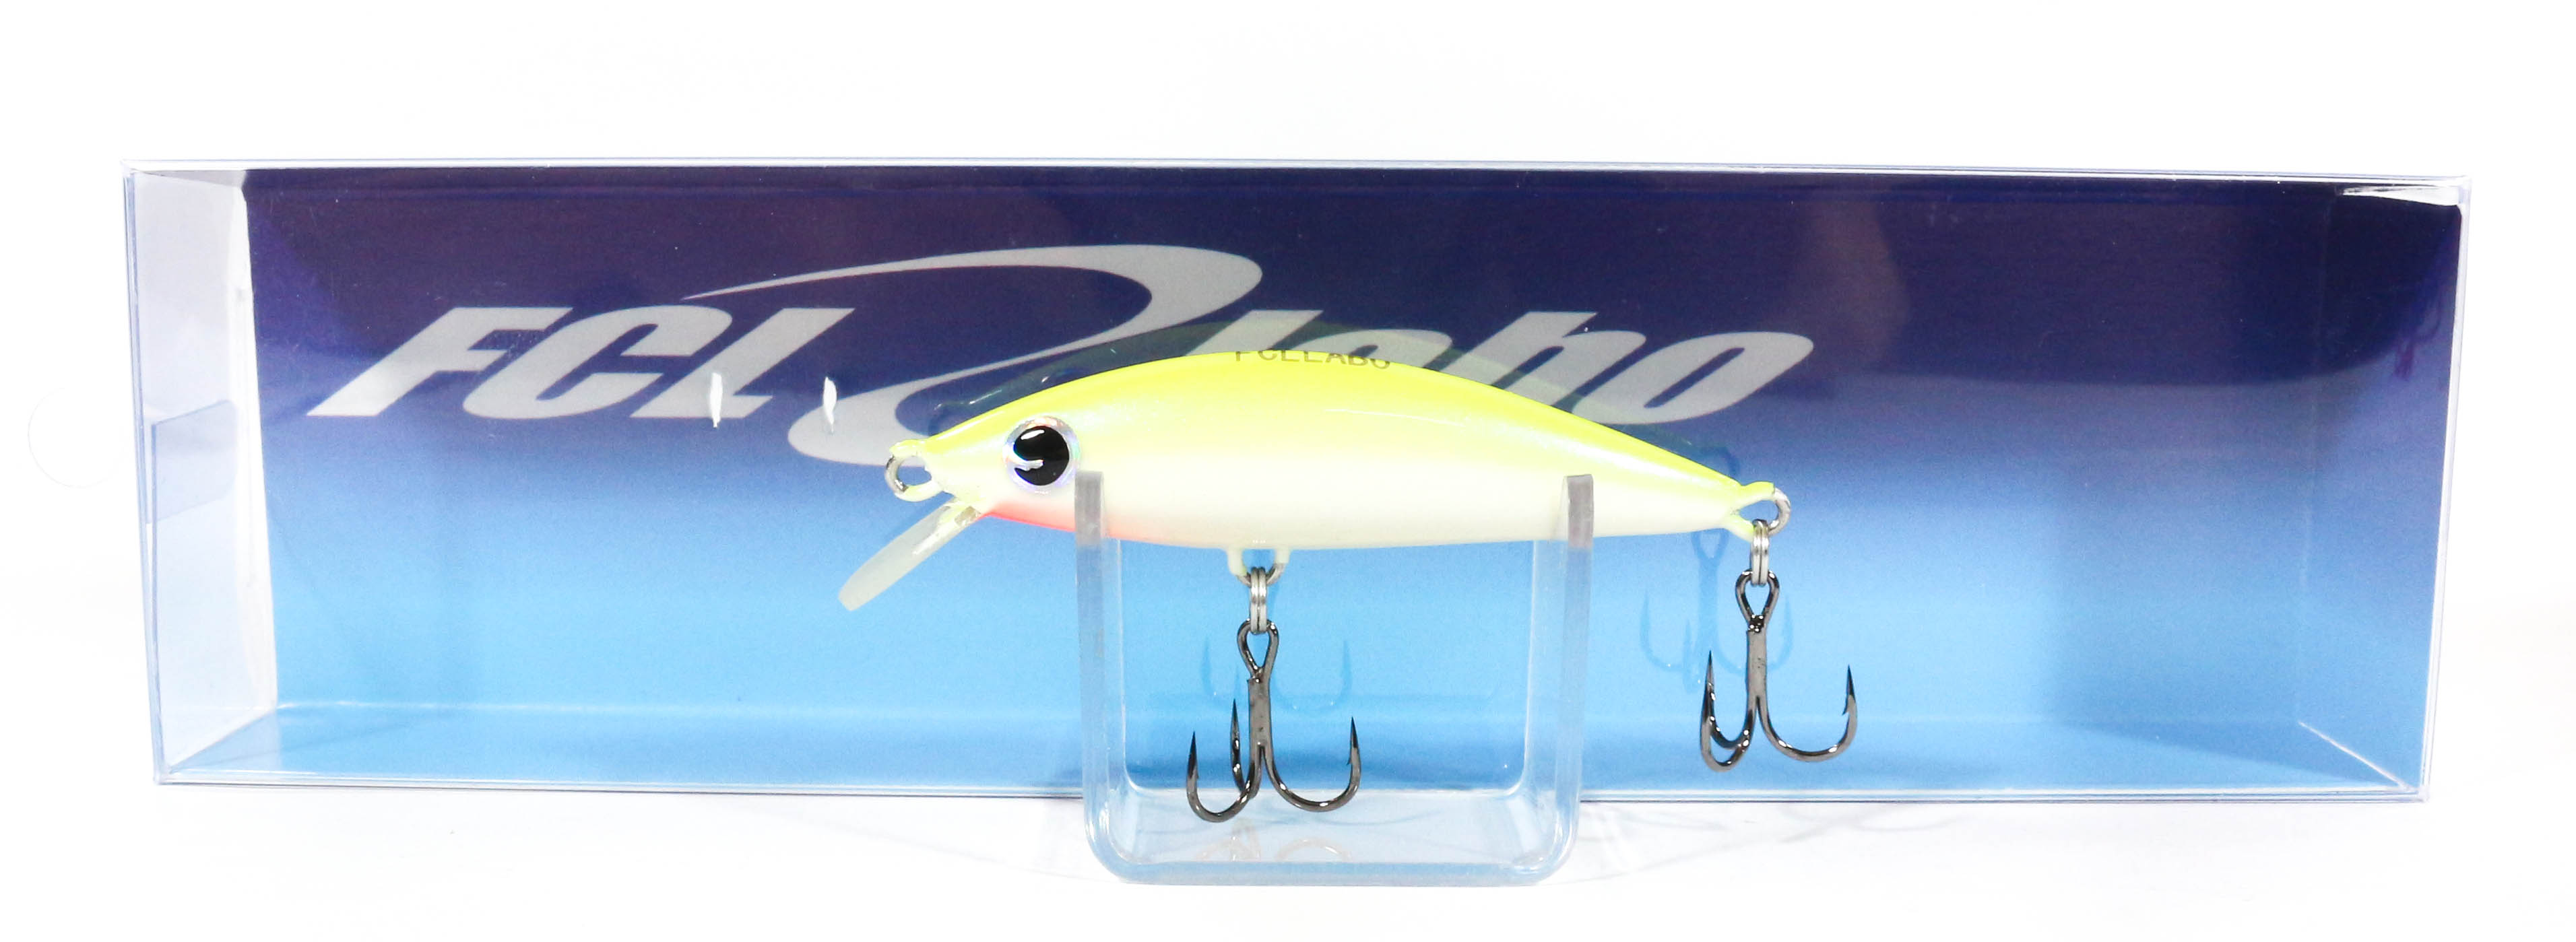 FCL Labo Lure HKTM 50F Floating Lure CH (9248)